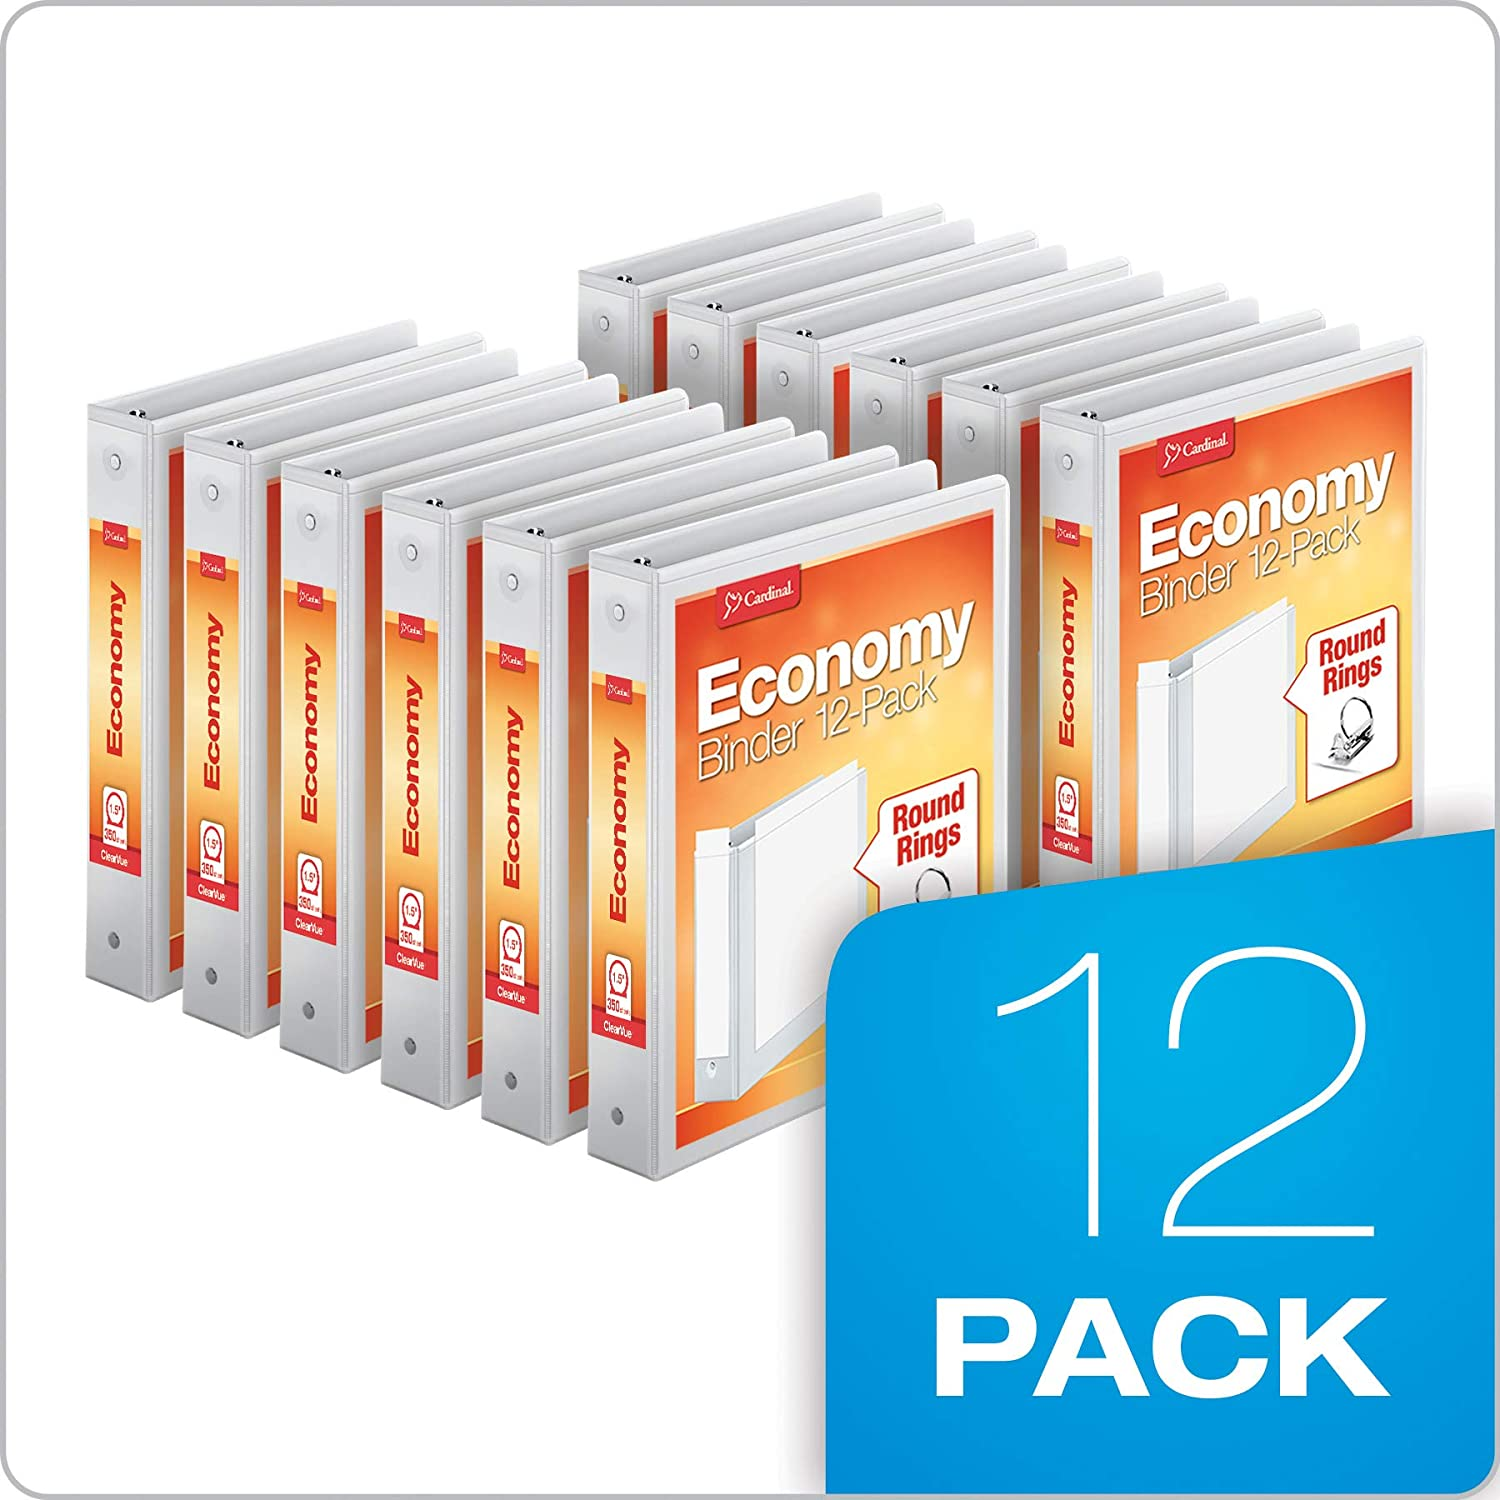 "Cardinal Economy 3-Ring Binders, 1.5"", Round Rings, Holds 350 Sheets, ClearVue Presentation View, Non-Stick, White, Carton of 12 (90631): Office Products"